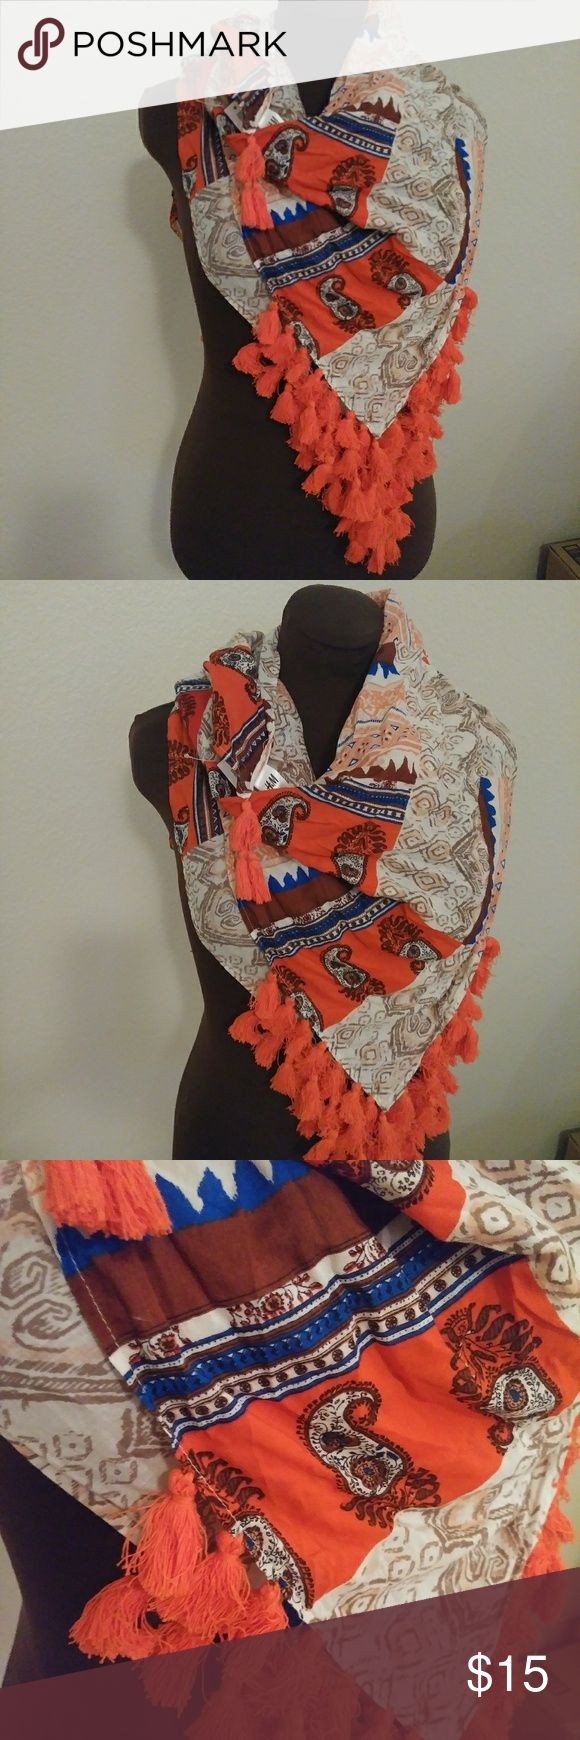 Tribal paisley tassle scarf New with tags! Square shaped scarf with tassle fringe on corner edges. Oranges, blues, cream and white colors. Can be woen so many ways. I have the scarf folded diagonally and lightly draped across the shoulders. H&M Accessories Scarves & Wraps